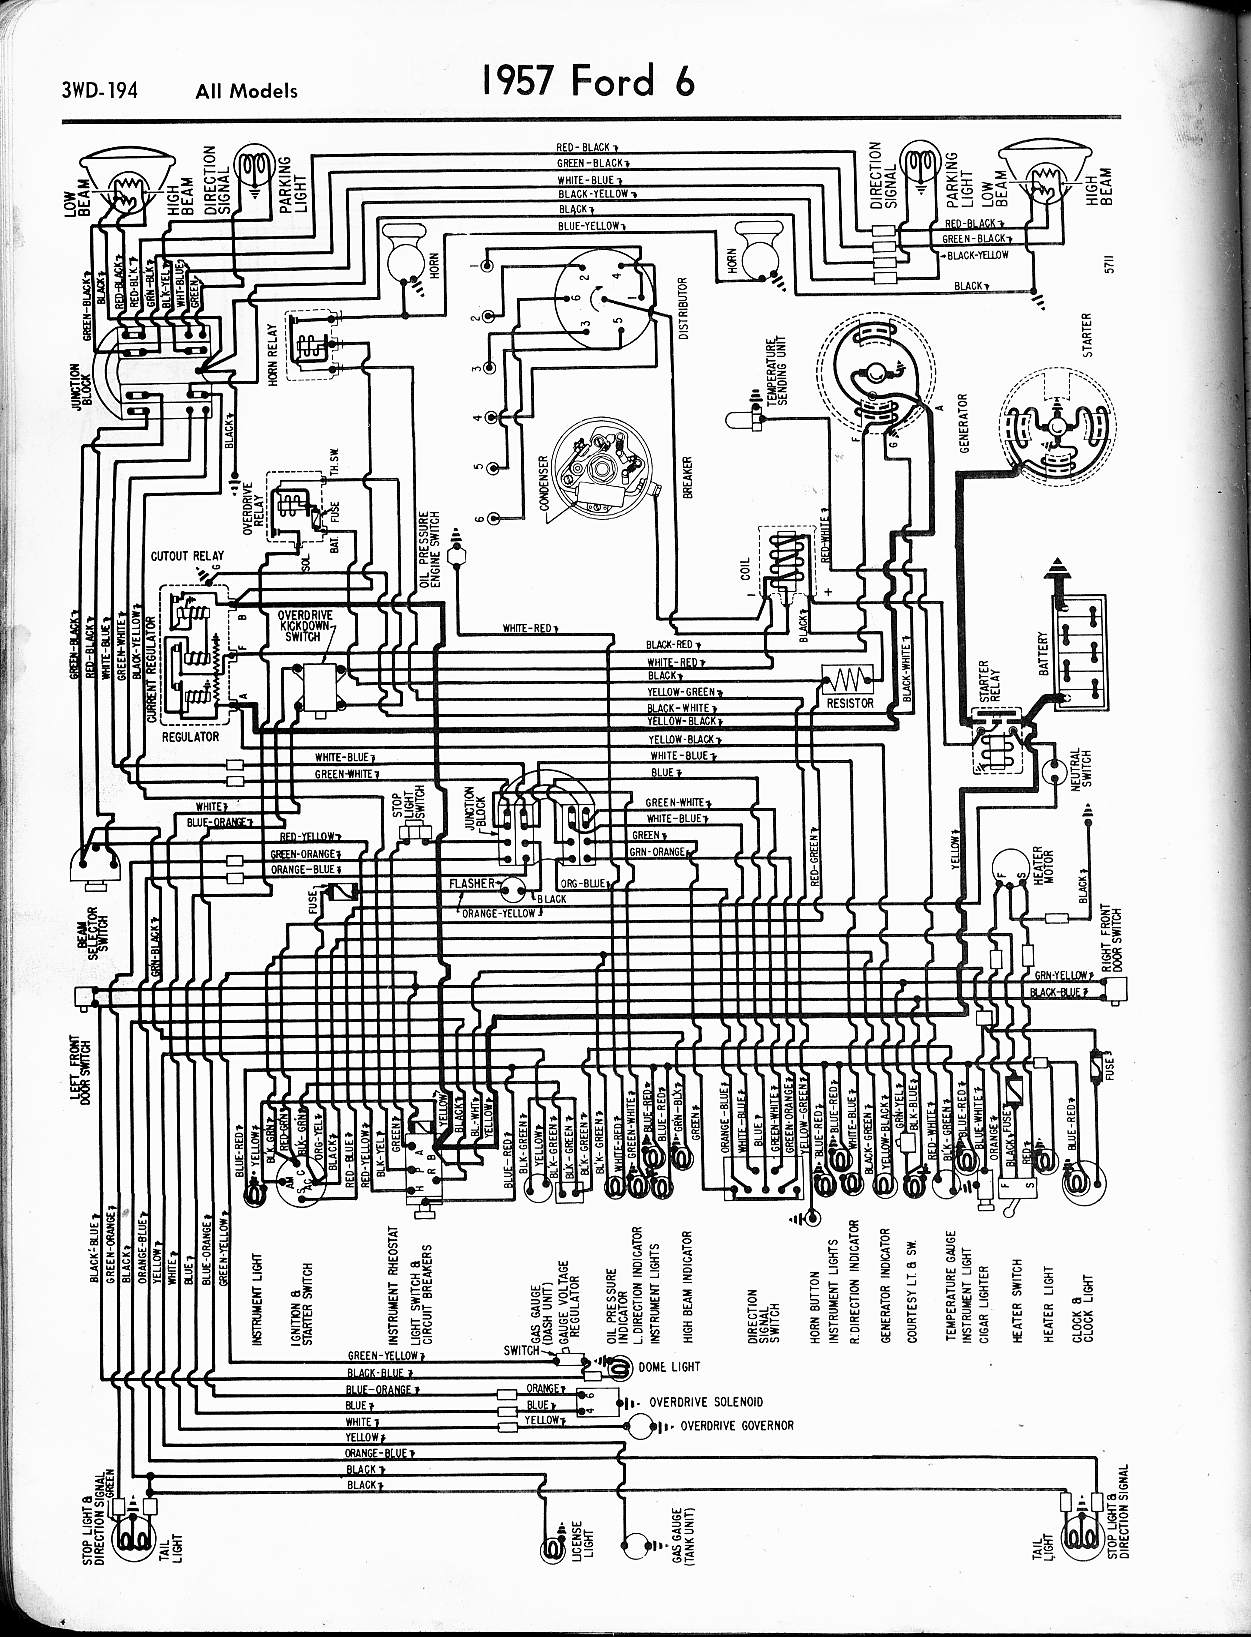 57 65 Ford Wiring Diagrams E300 Wiring Diagram F250 Wiring Diagram